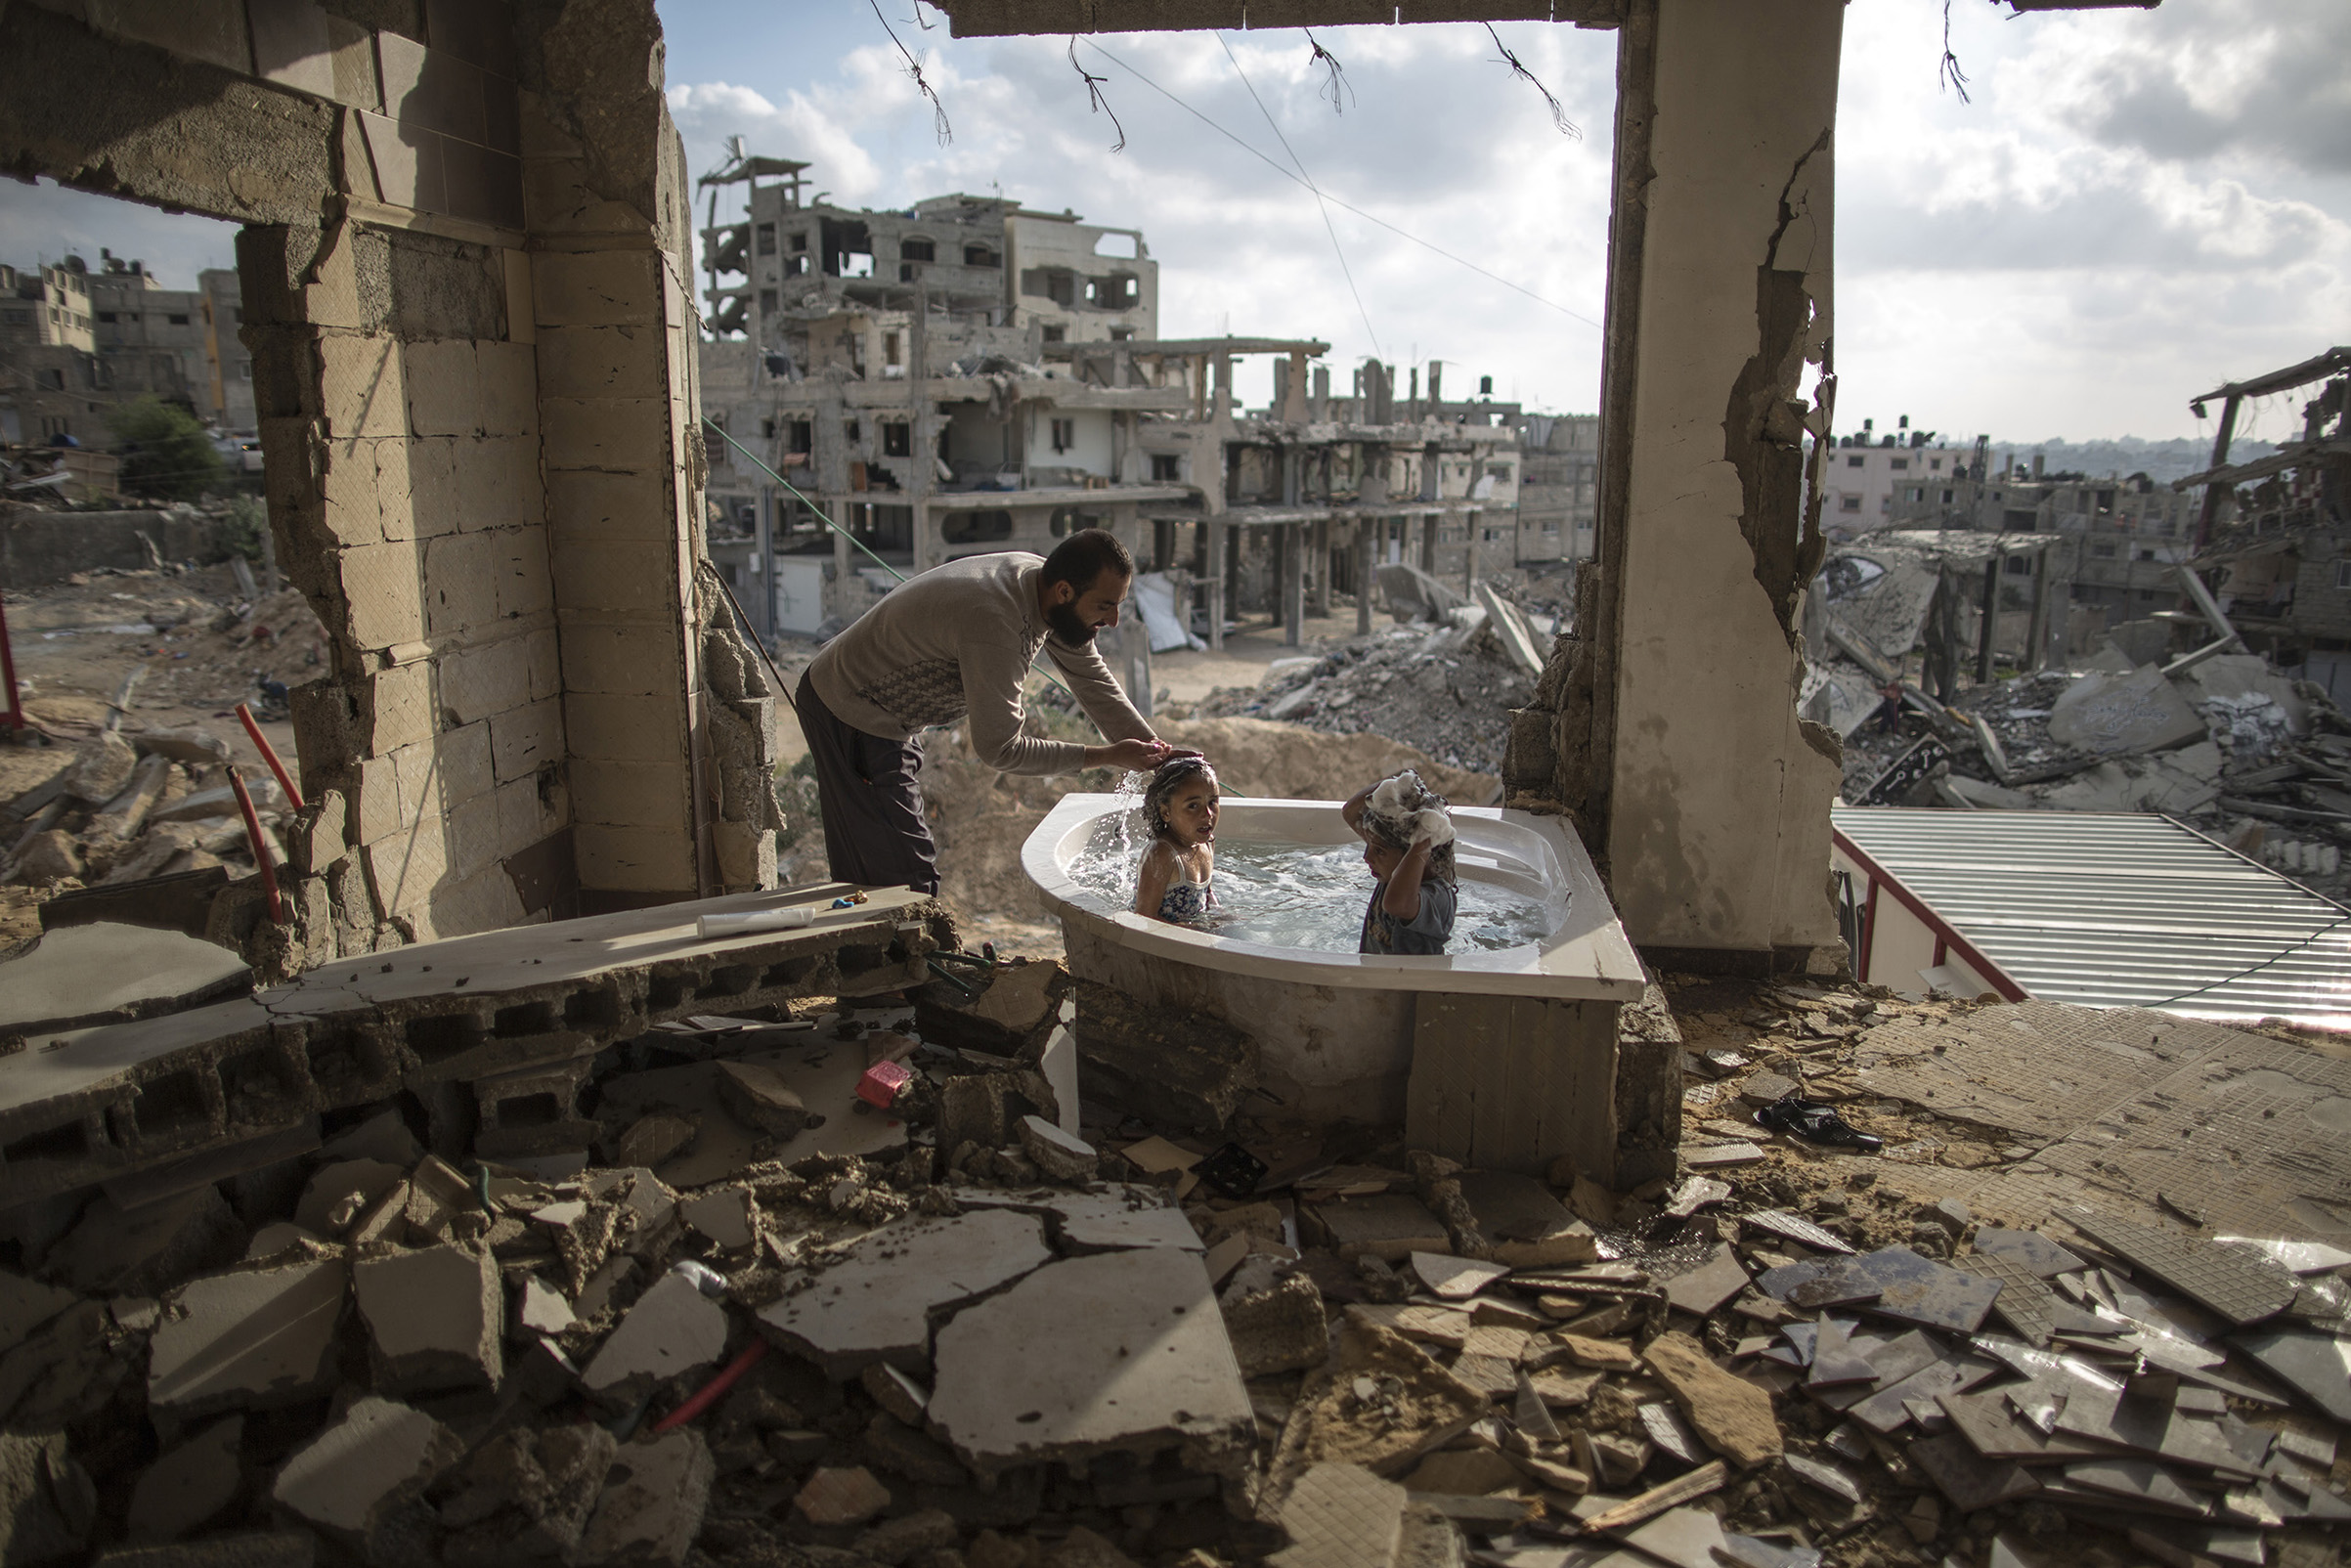 June 26, 2015  .Salem Saoody, 30, is getting his daughter Layan (L) and his niece Shaymaa 5 (R) in the only remaining piece from their damaged house, which is the bathing tub. They now live in a caravan near the rubbles. By Wissam Nassar.